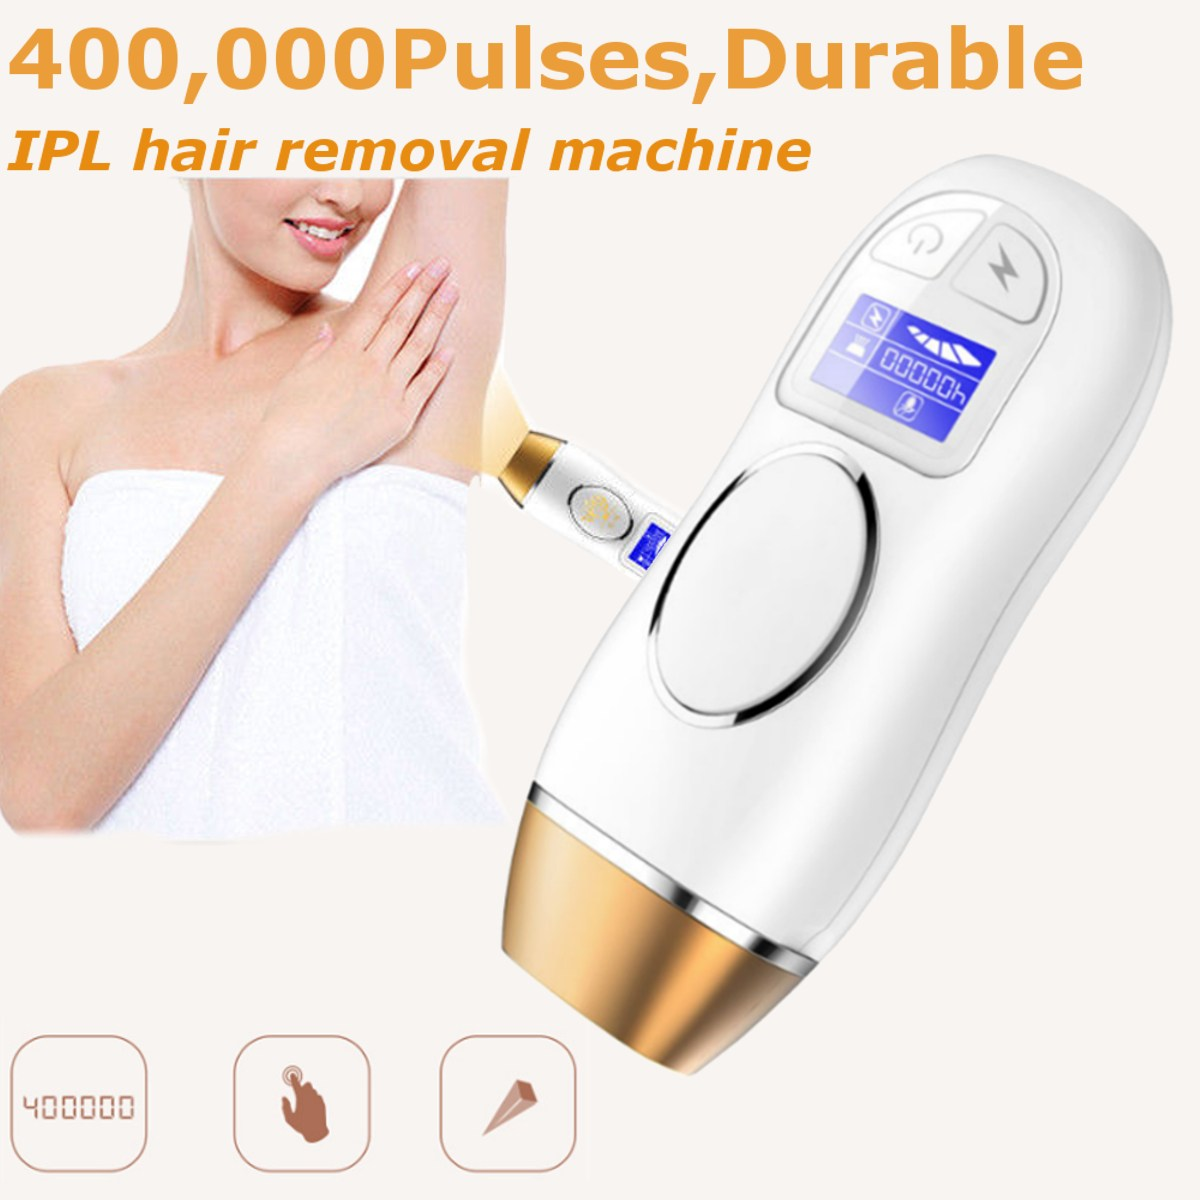 US $83 43 37% OFF|IPL Laser Permanent Hair Removal Machine 400000 Pulses  Electric Epilator Depilador For Facial Body Armpit Underarm Bikini Leg-in